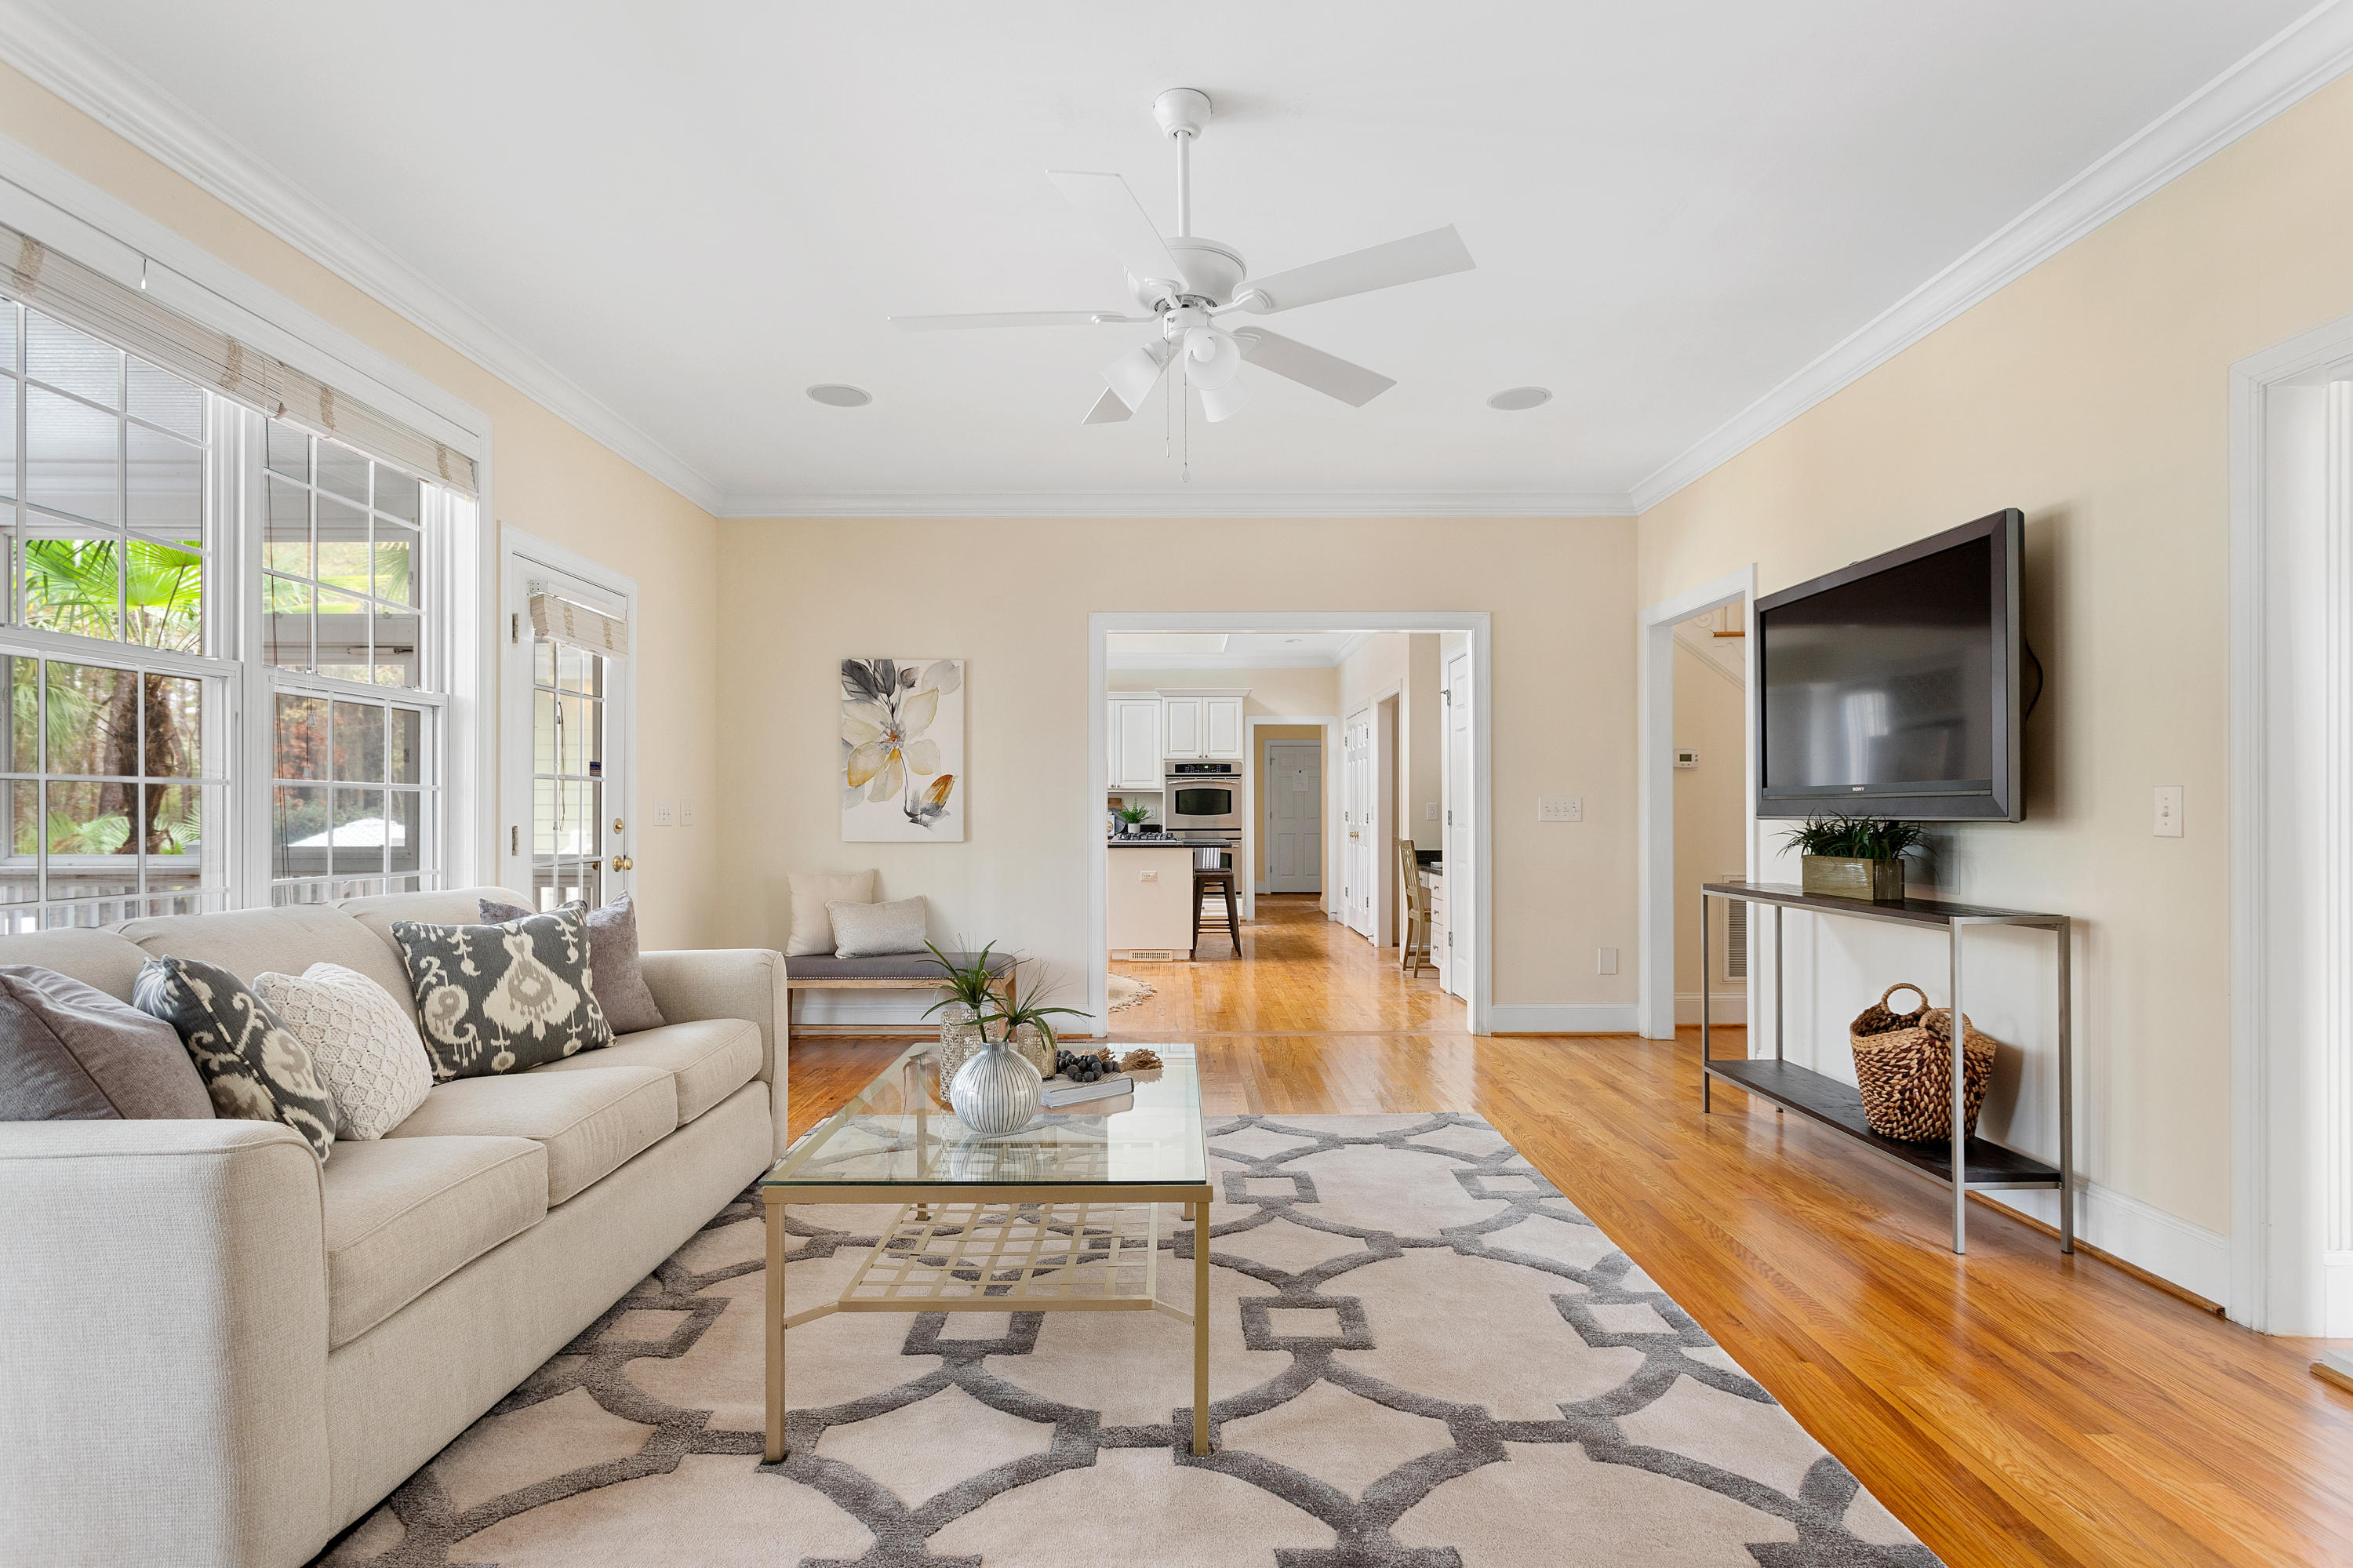 Dunes West Homes For Sale - 1842 Shell Ring, Mount Pleasant, SC - 6